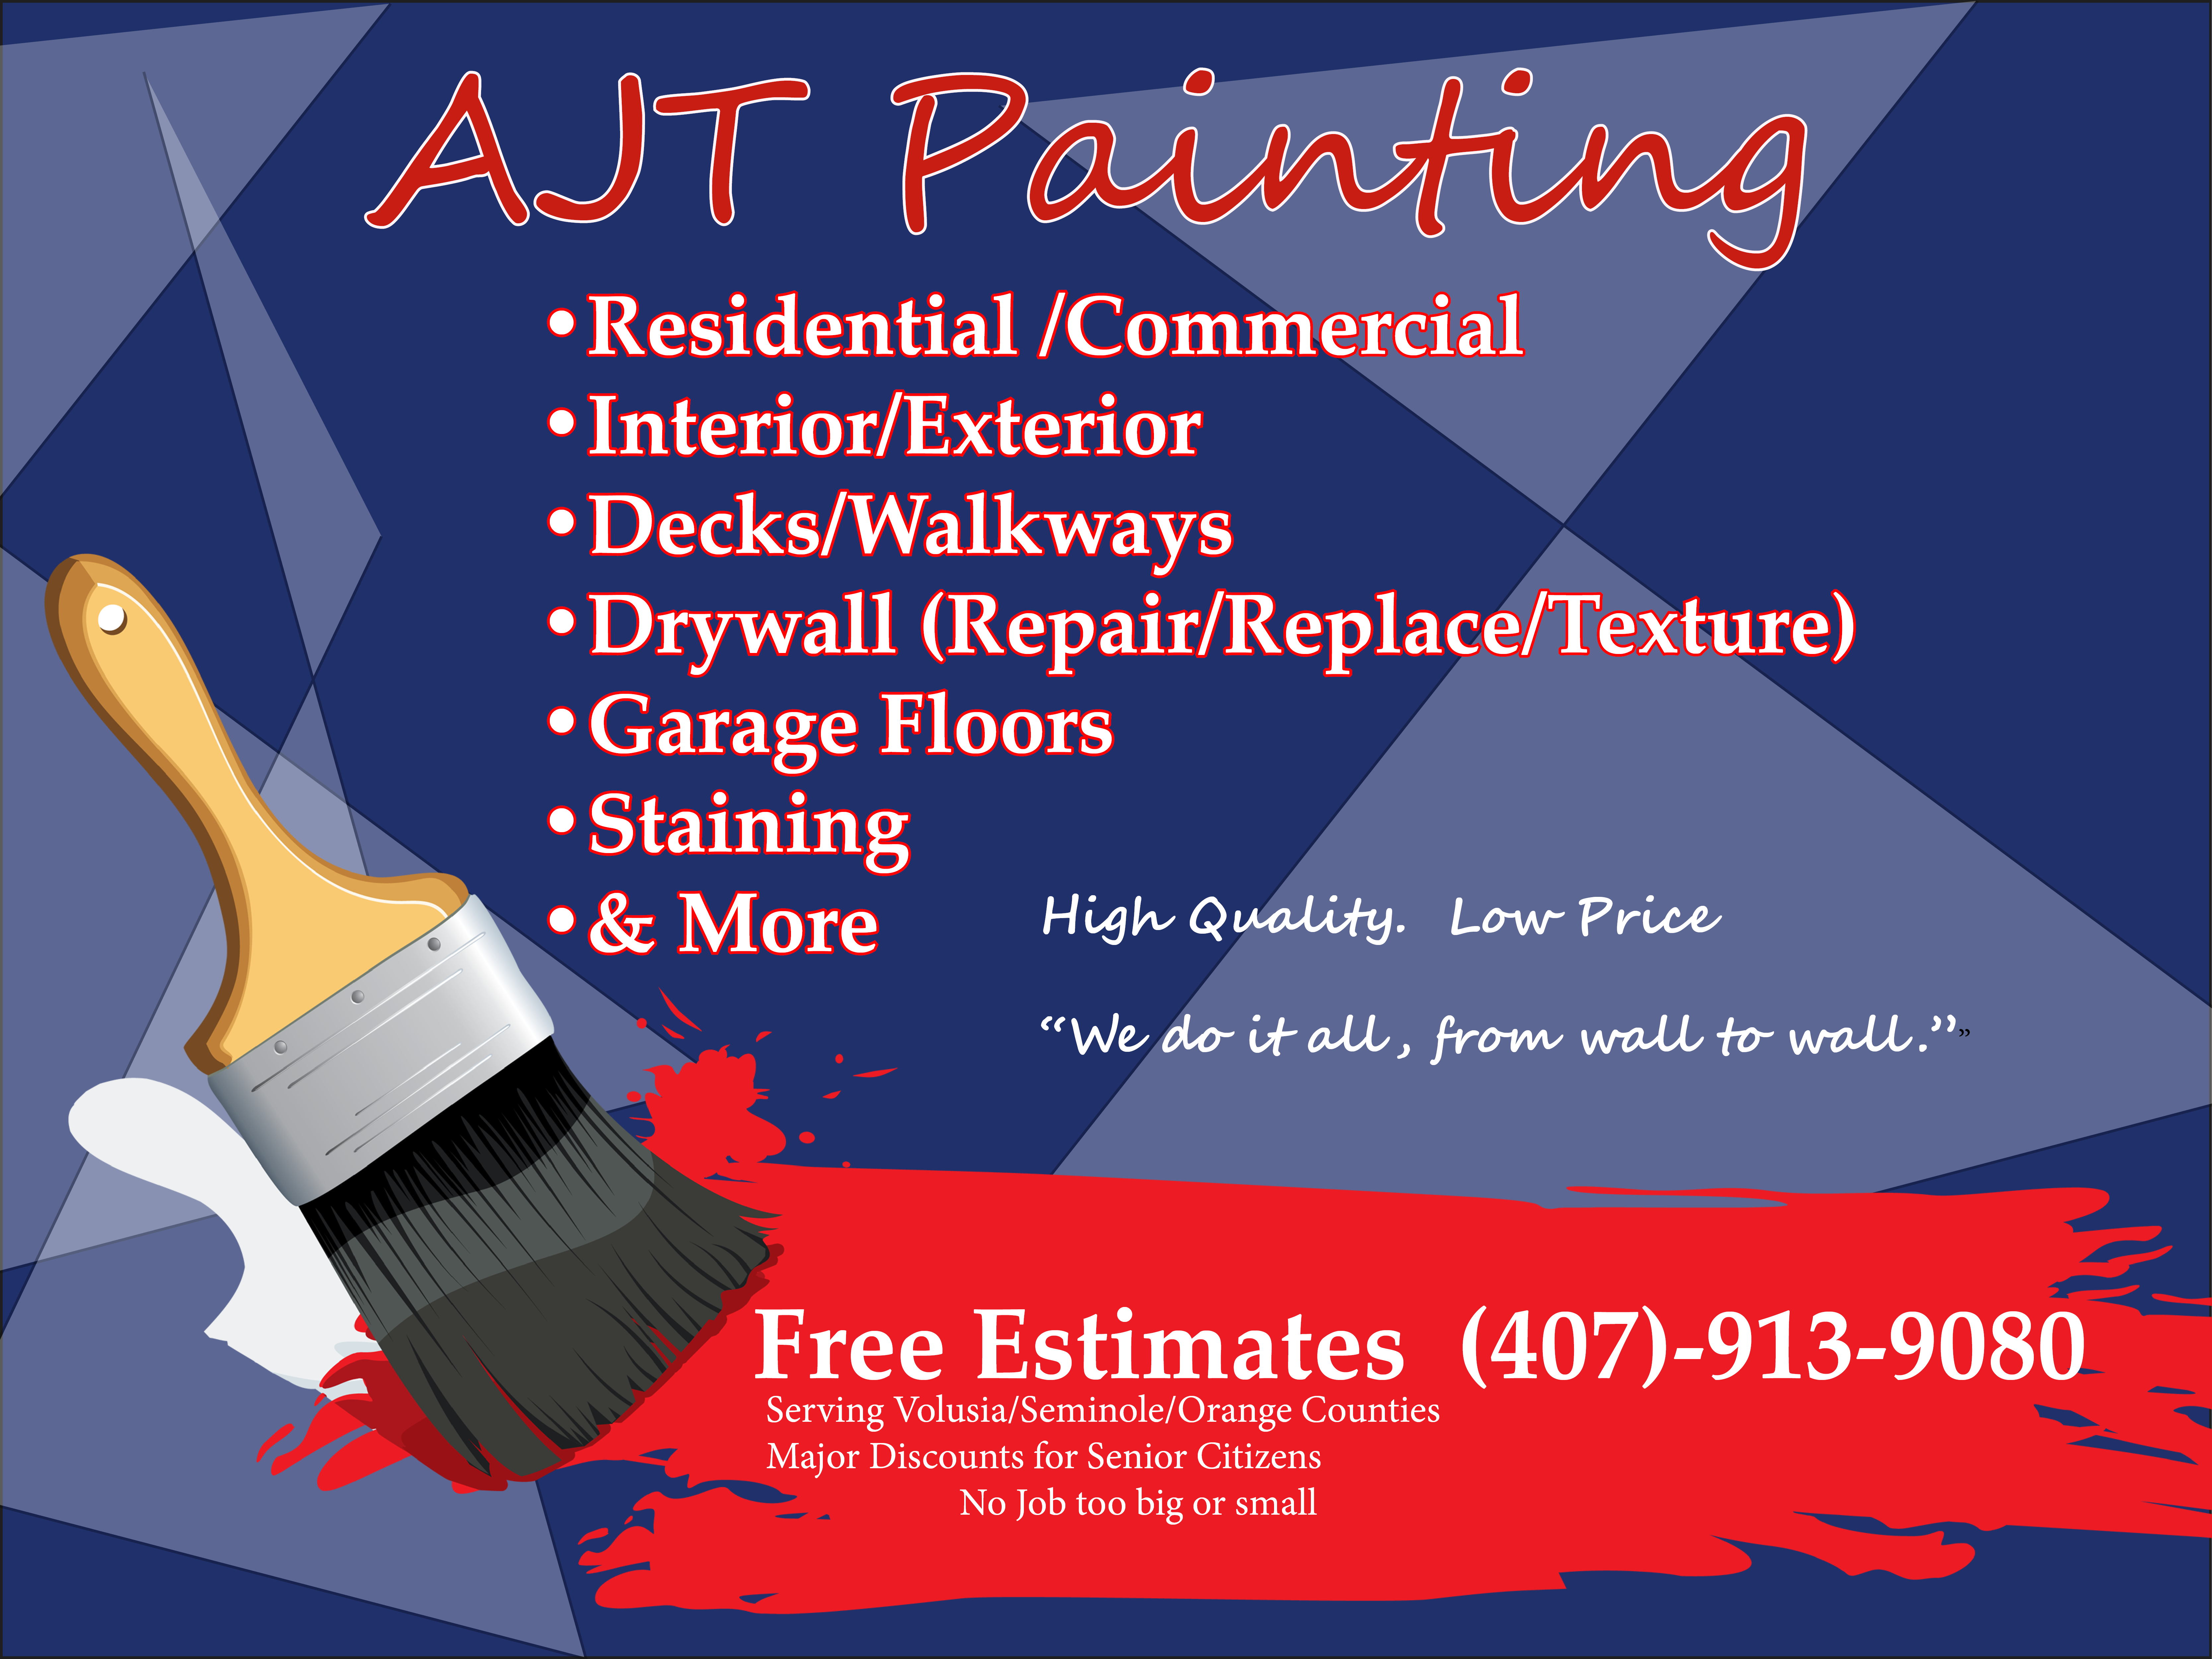 Pin by AJT Painting on AJT PAINTING Serving all of Central